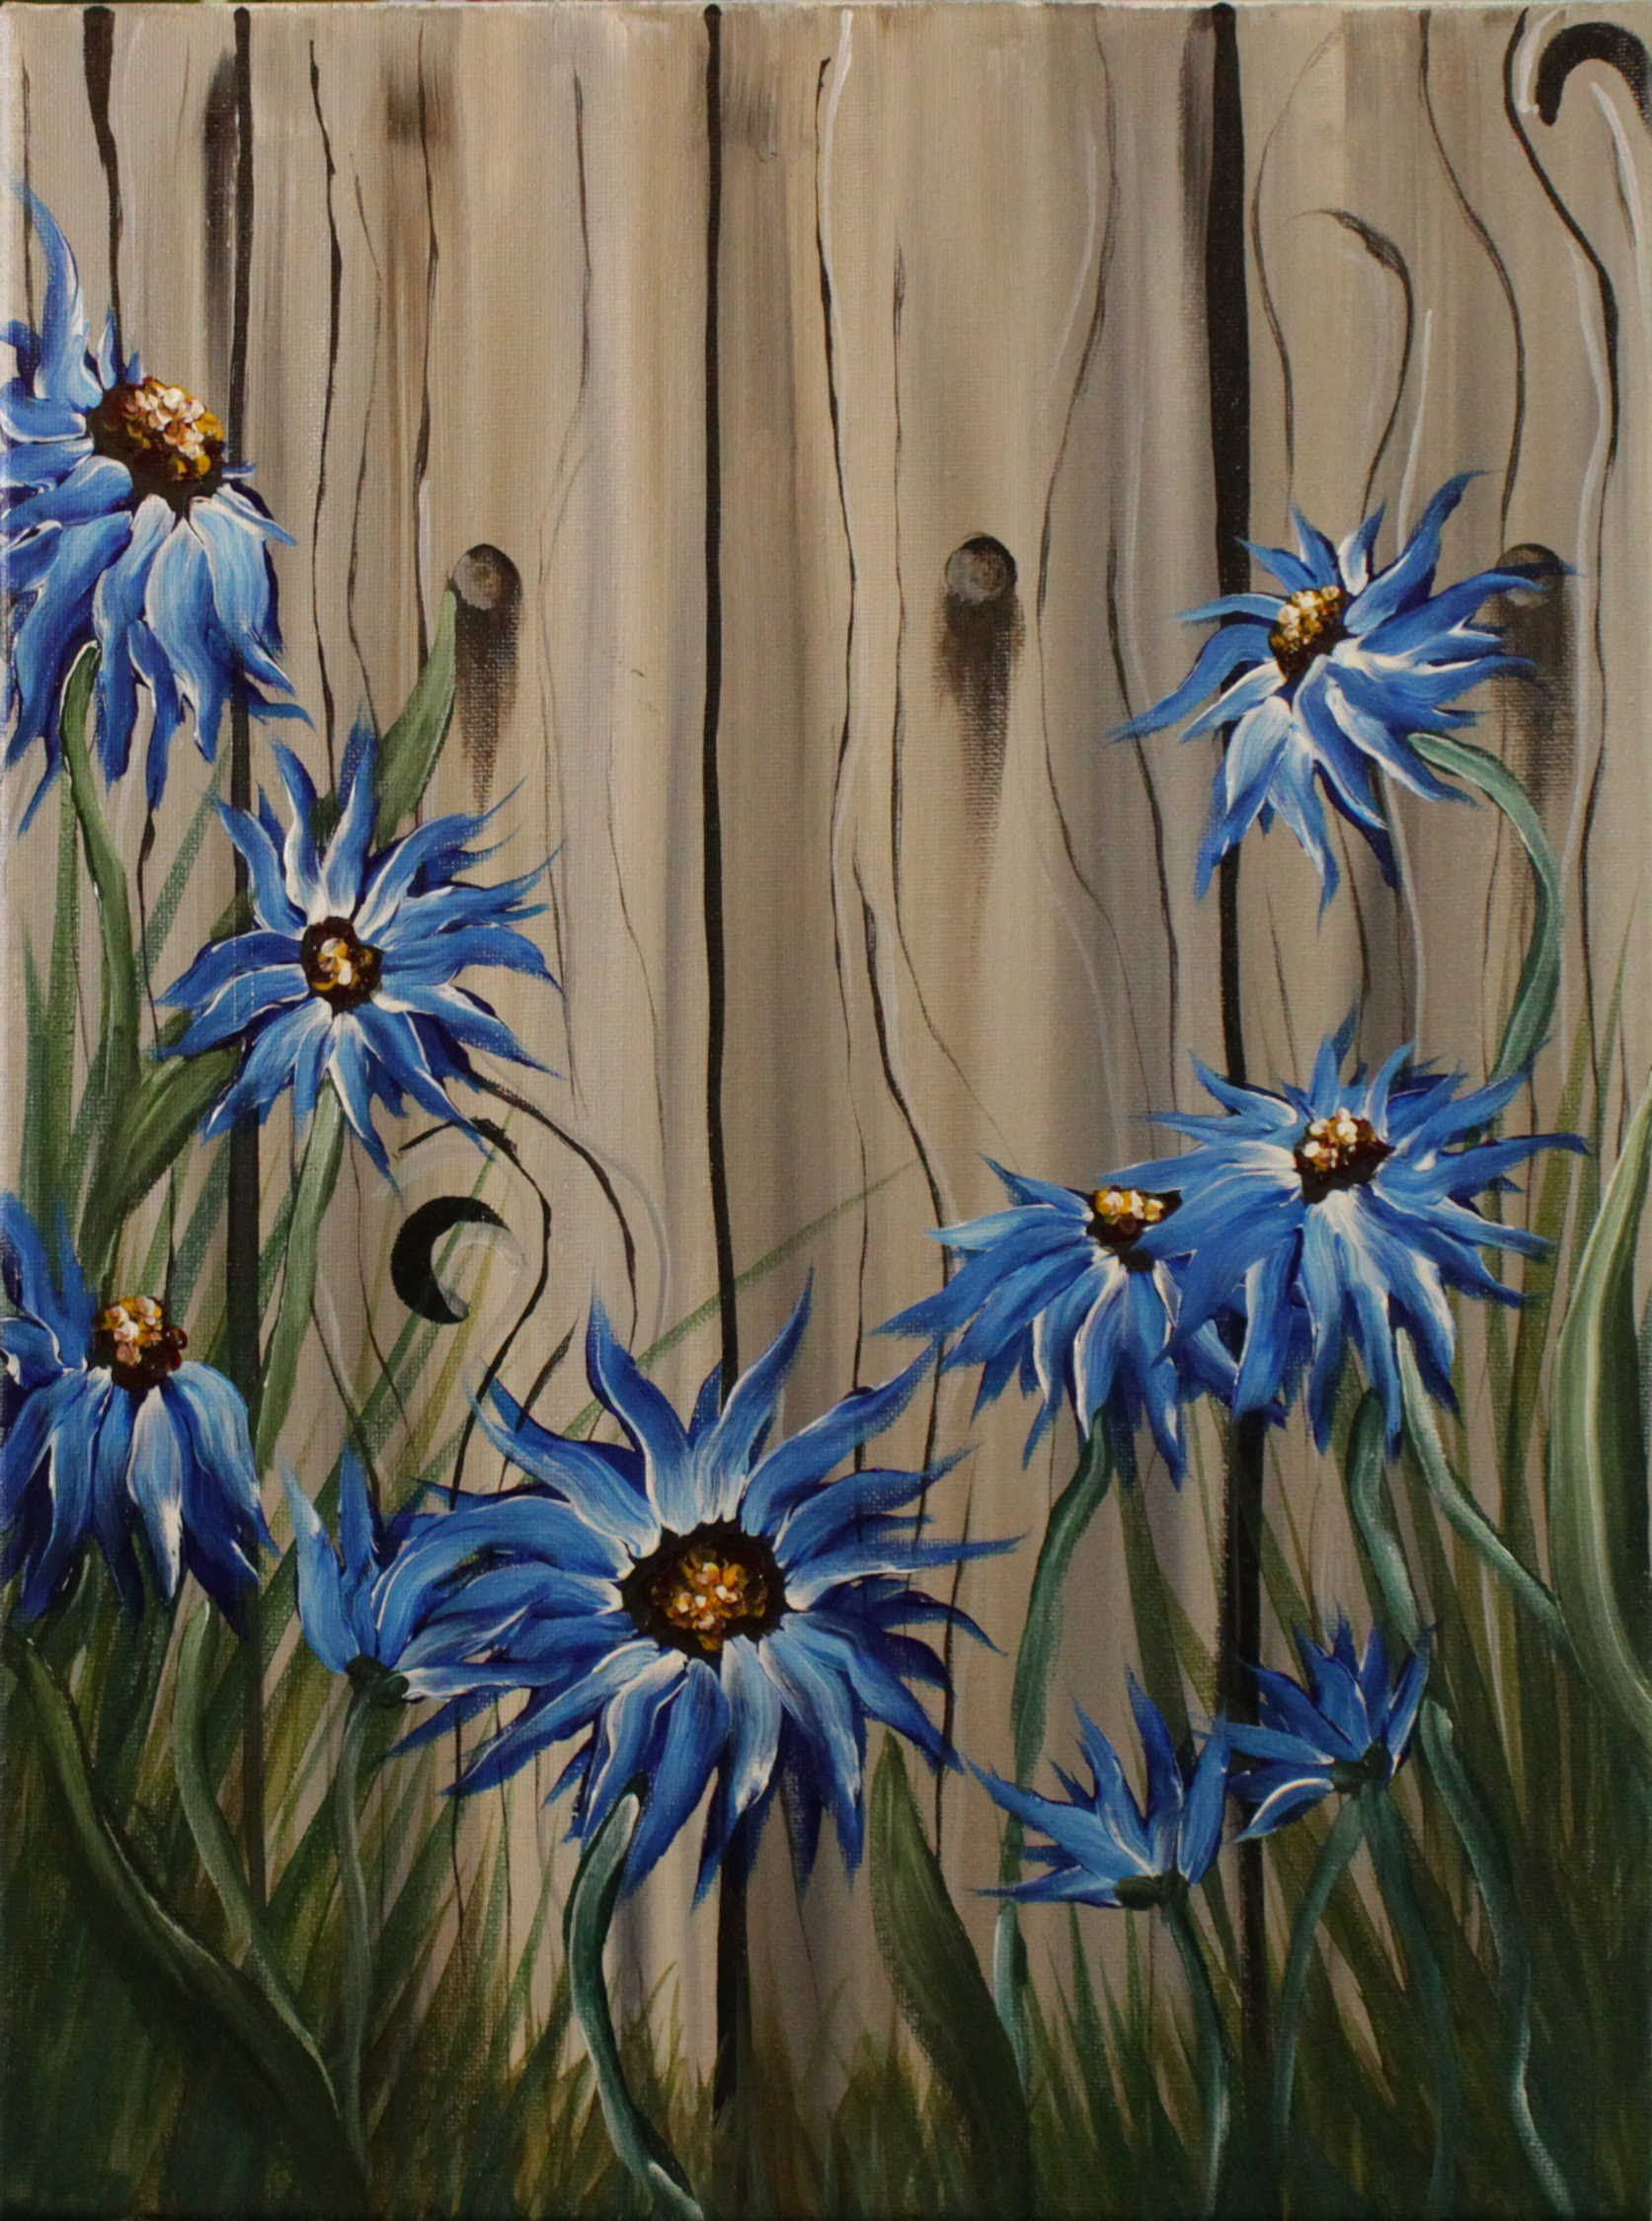 Summer Flowers on the Fence Step by Step Acrylic Painting on Canvas for